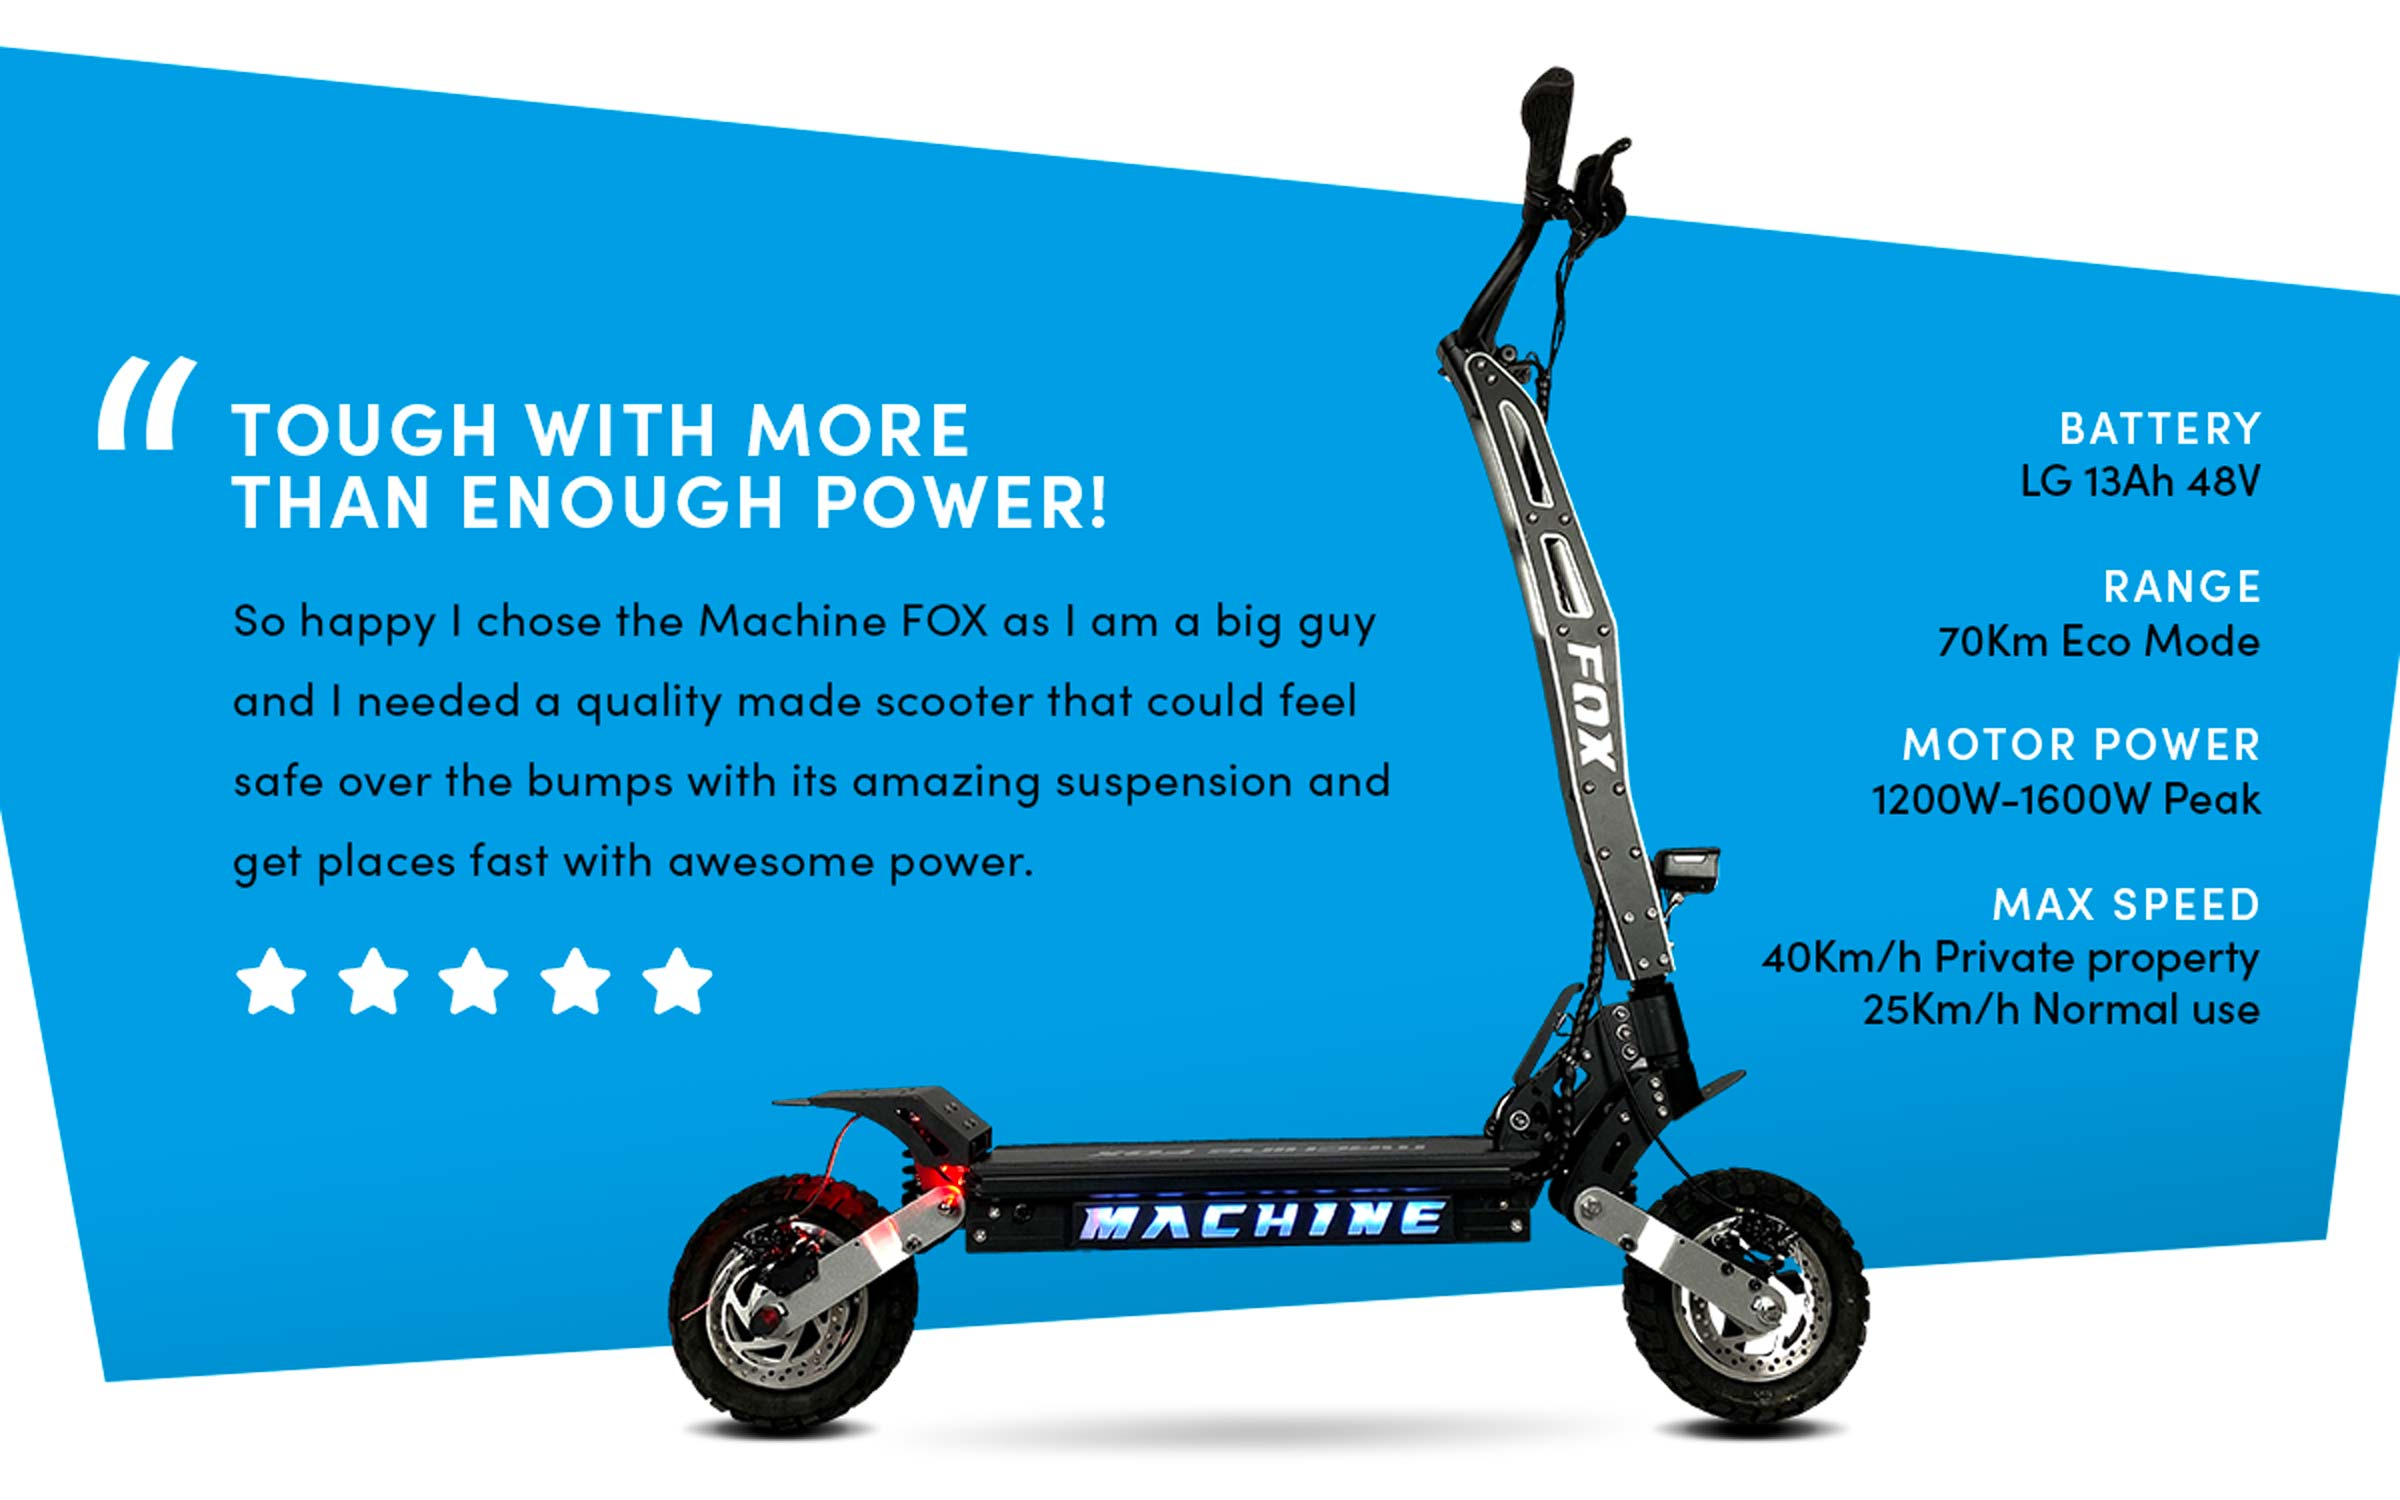 Machine Fox E-Scooter - Review and Specs